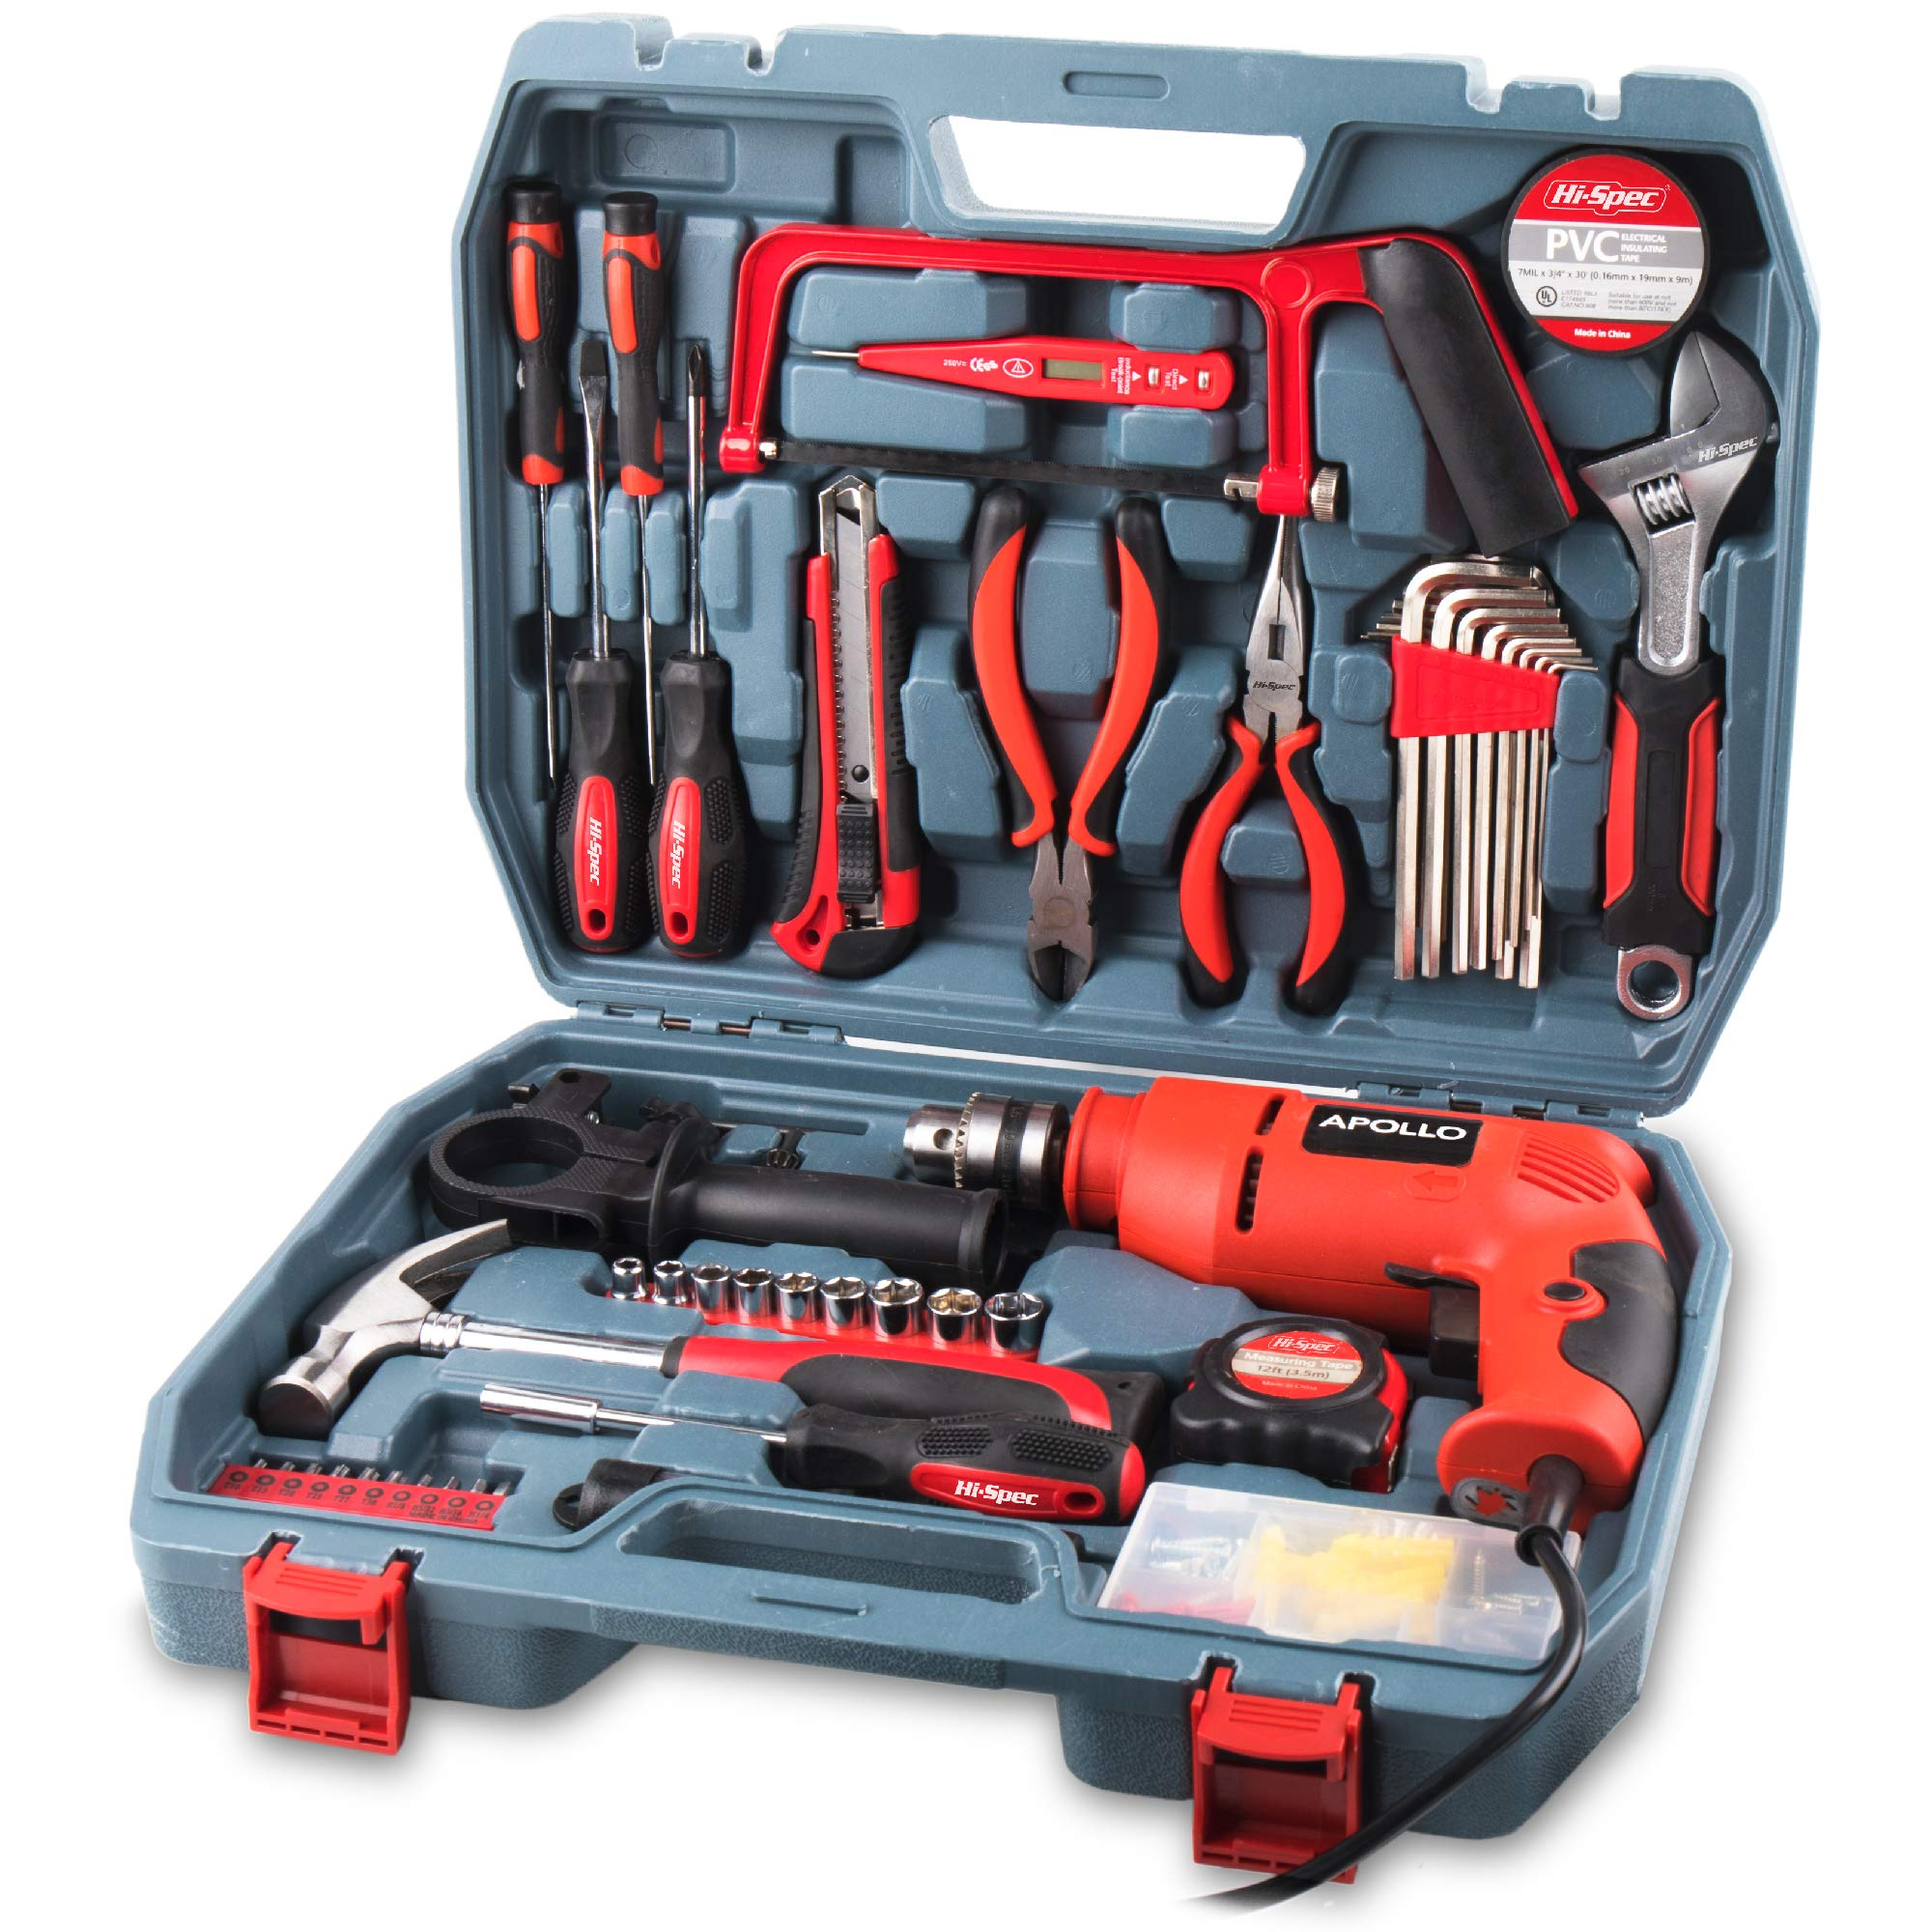 Hi-Spec Complete 130pc 110V 300W Hammer Power Drill & Hand Tool Set Combo Kit with Hacksaw, Pliers, Claw-Hammer, Wrench, Box Cutter, Hex Keys, Screwdrivers, Socket and Driver Bits, Voltage Tester Case by Hi-Spec (Image #1)